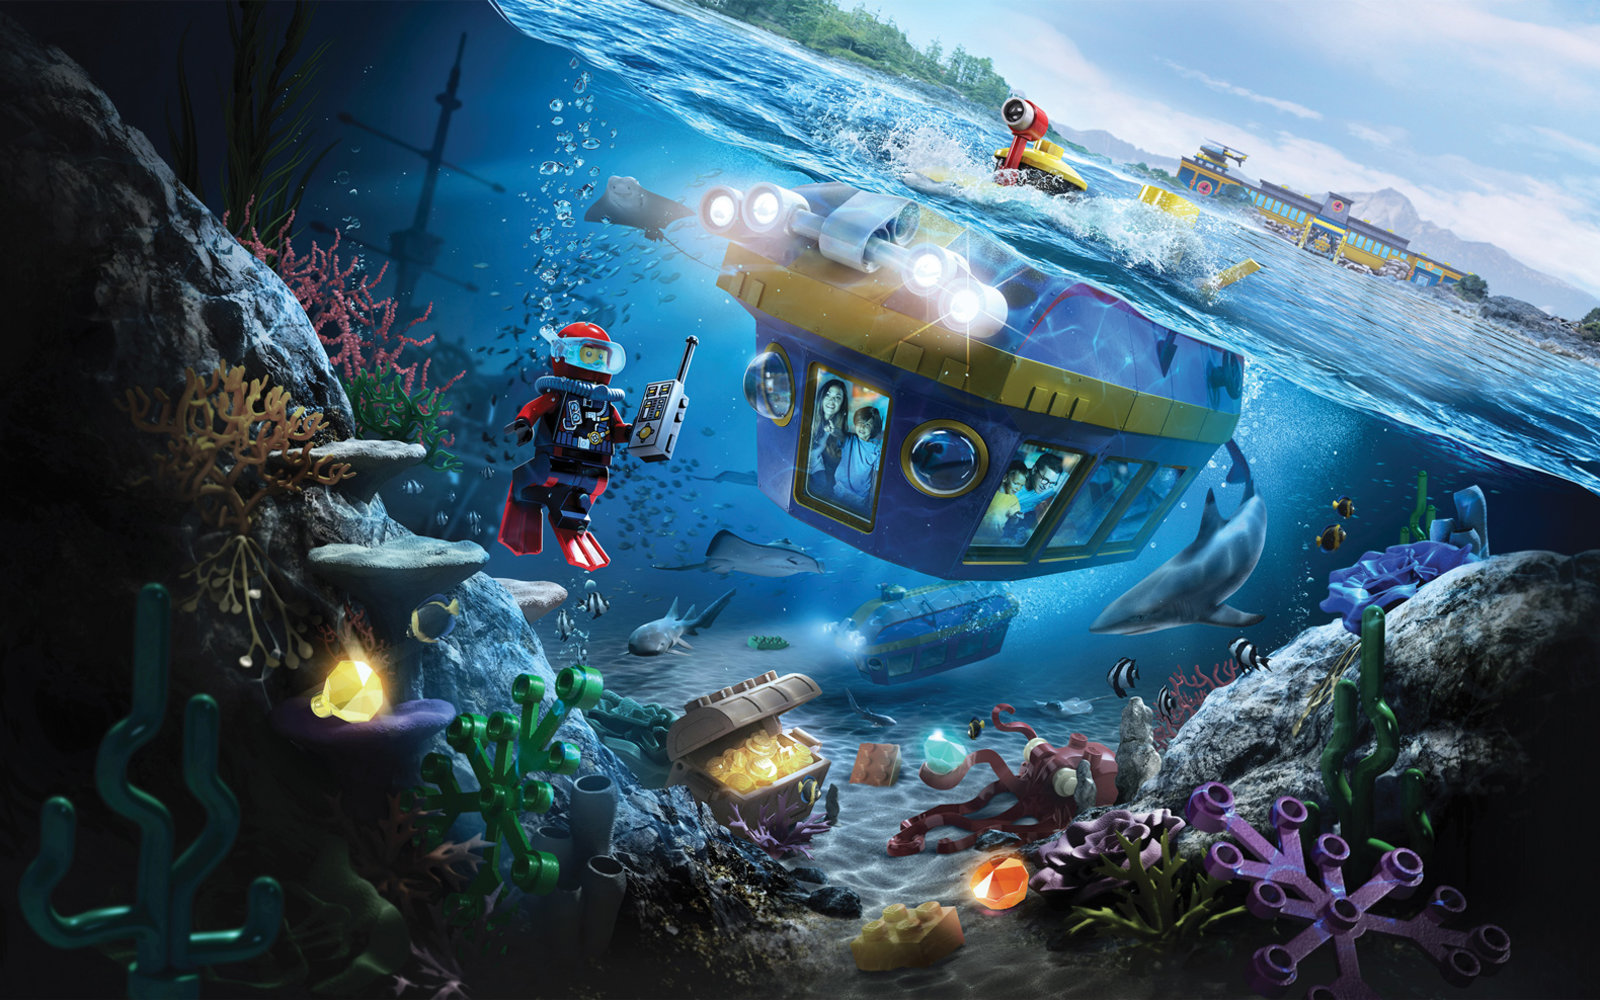 Legoland Deep Sea Adventure